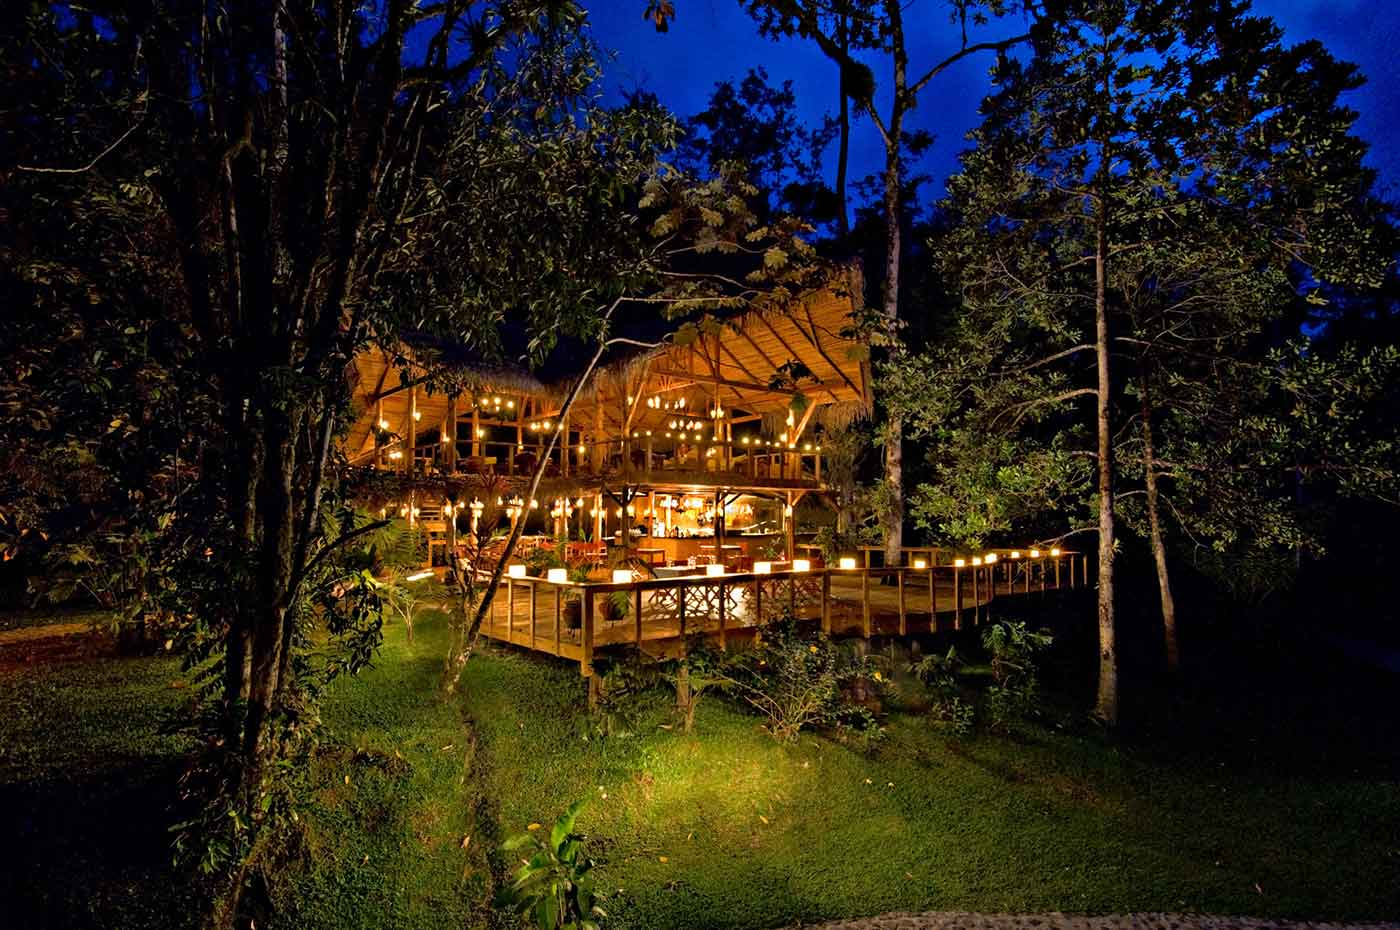 Restaurant bei Nacht - Pacuare Lodge Fluss- Costa Rica